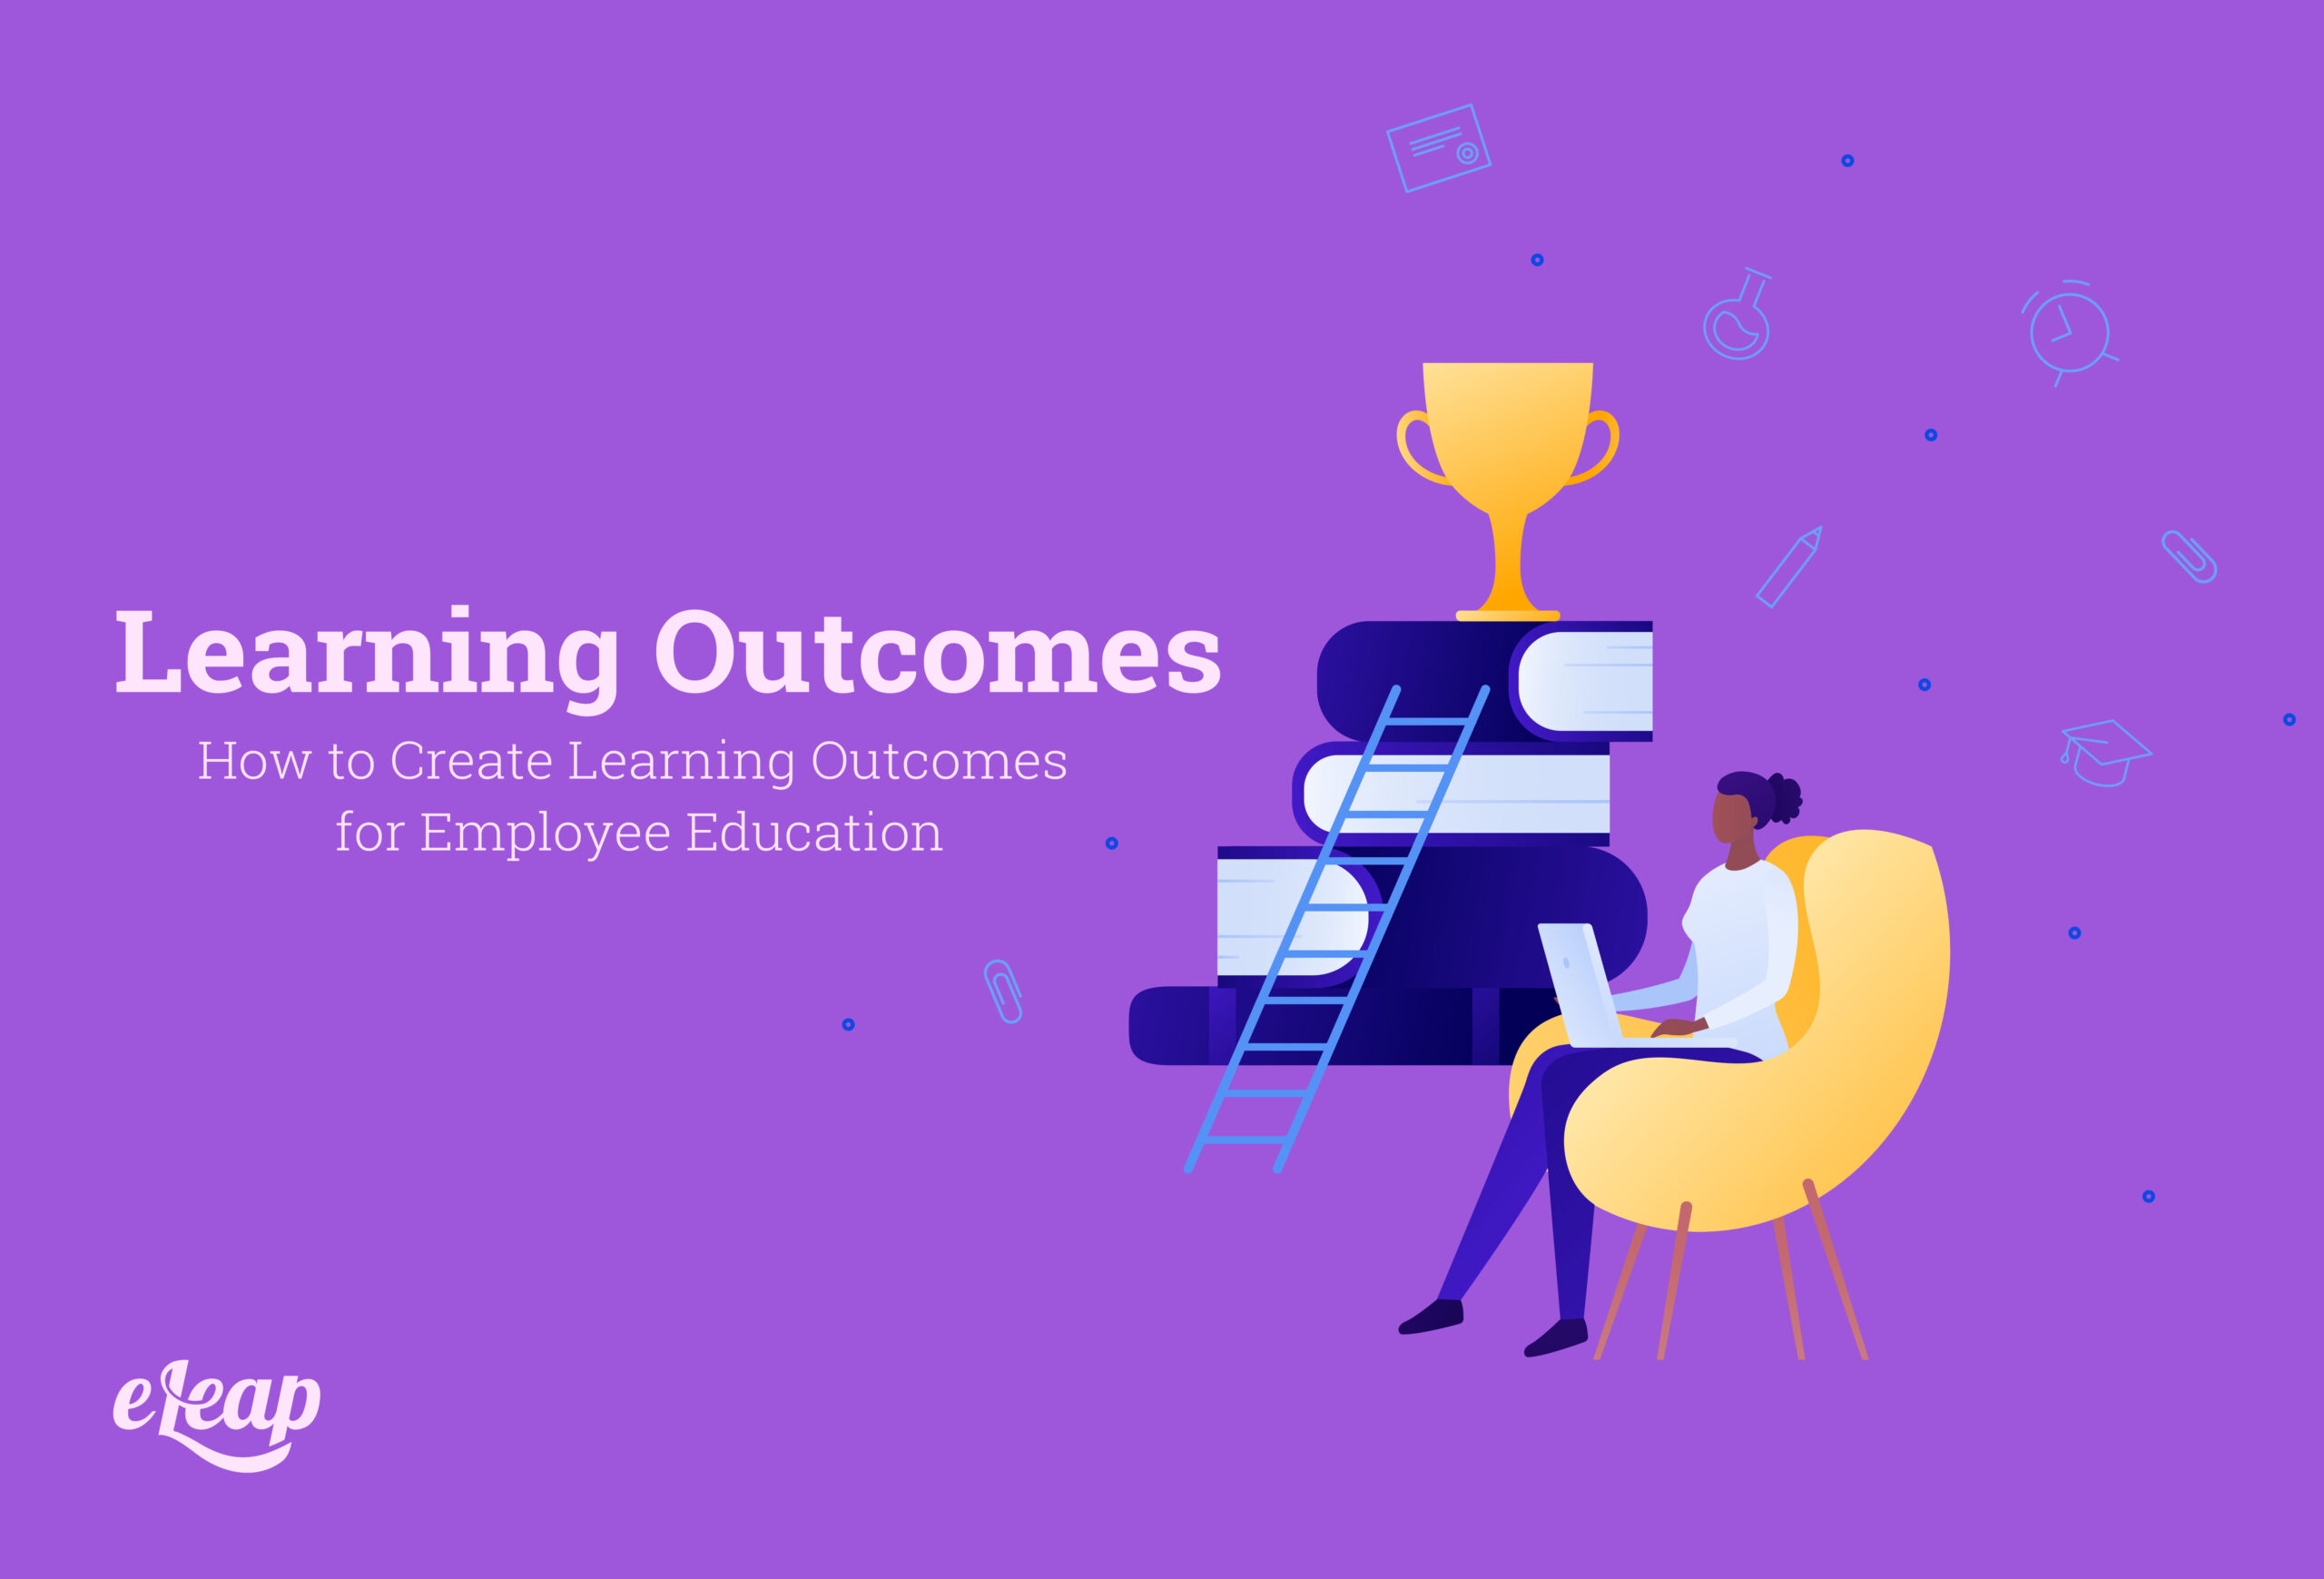 How to Create Learning Outcomes for Employee Education